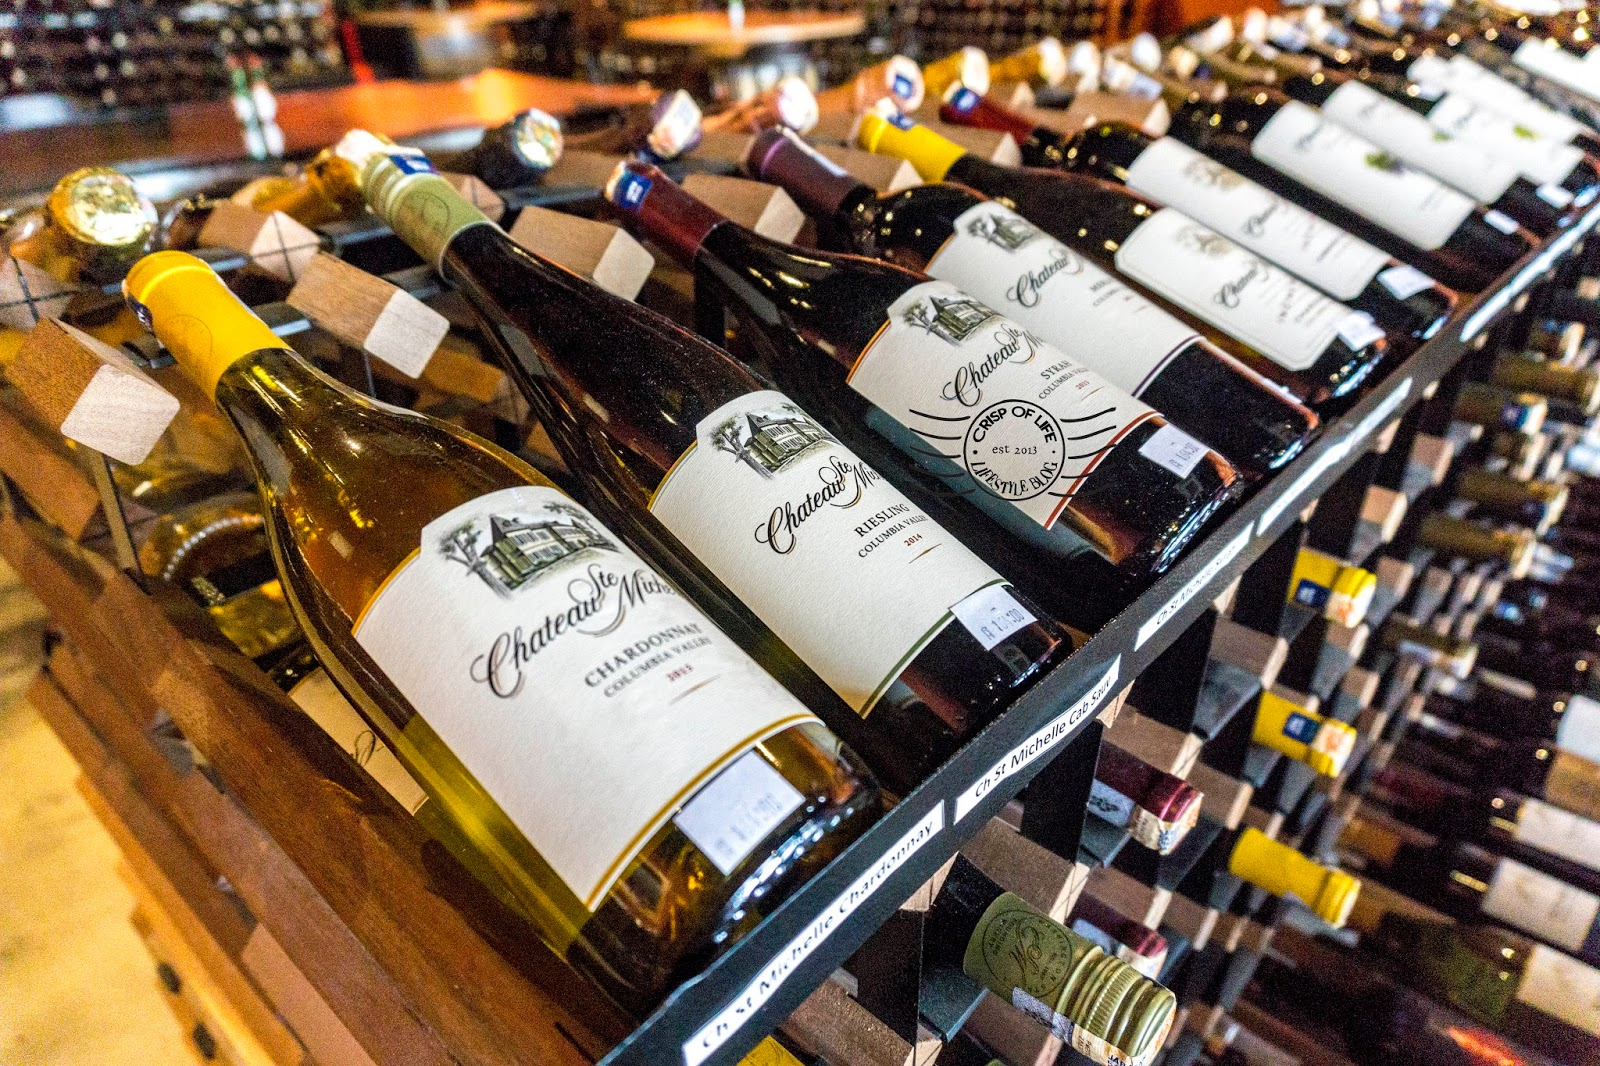 The Wine Shop @ Olive Residency, Bayan Lepas, Penang